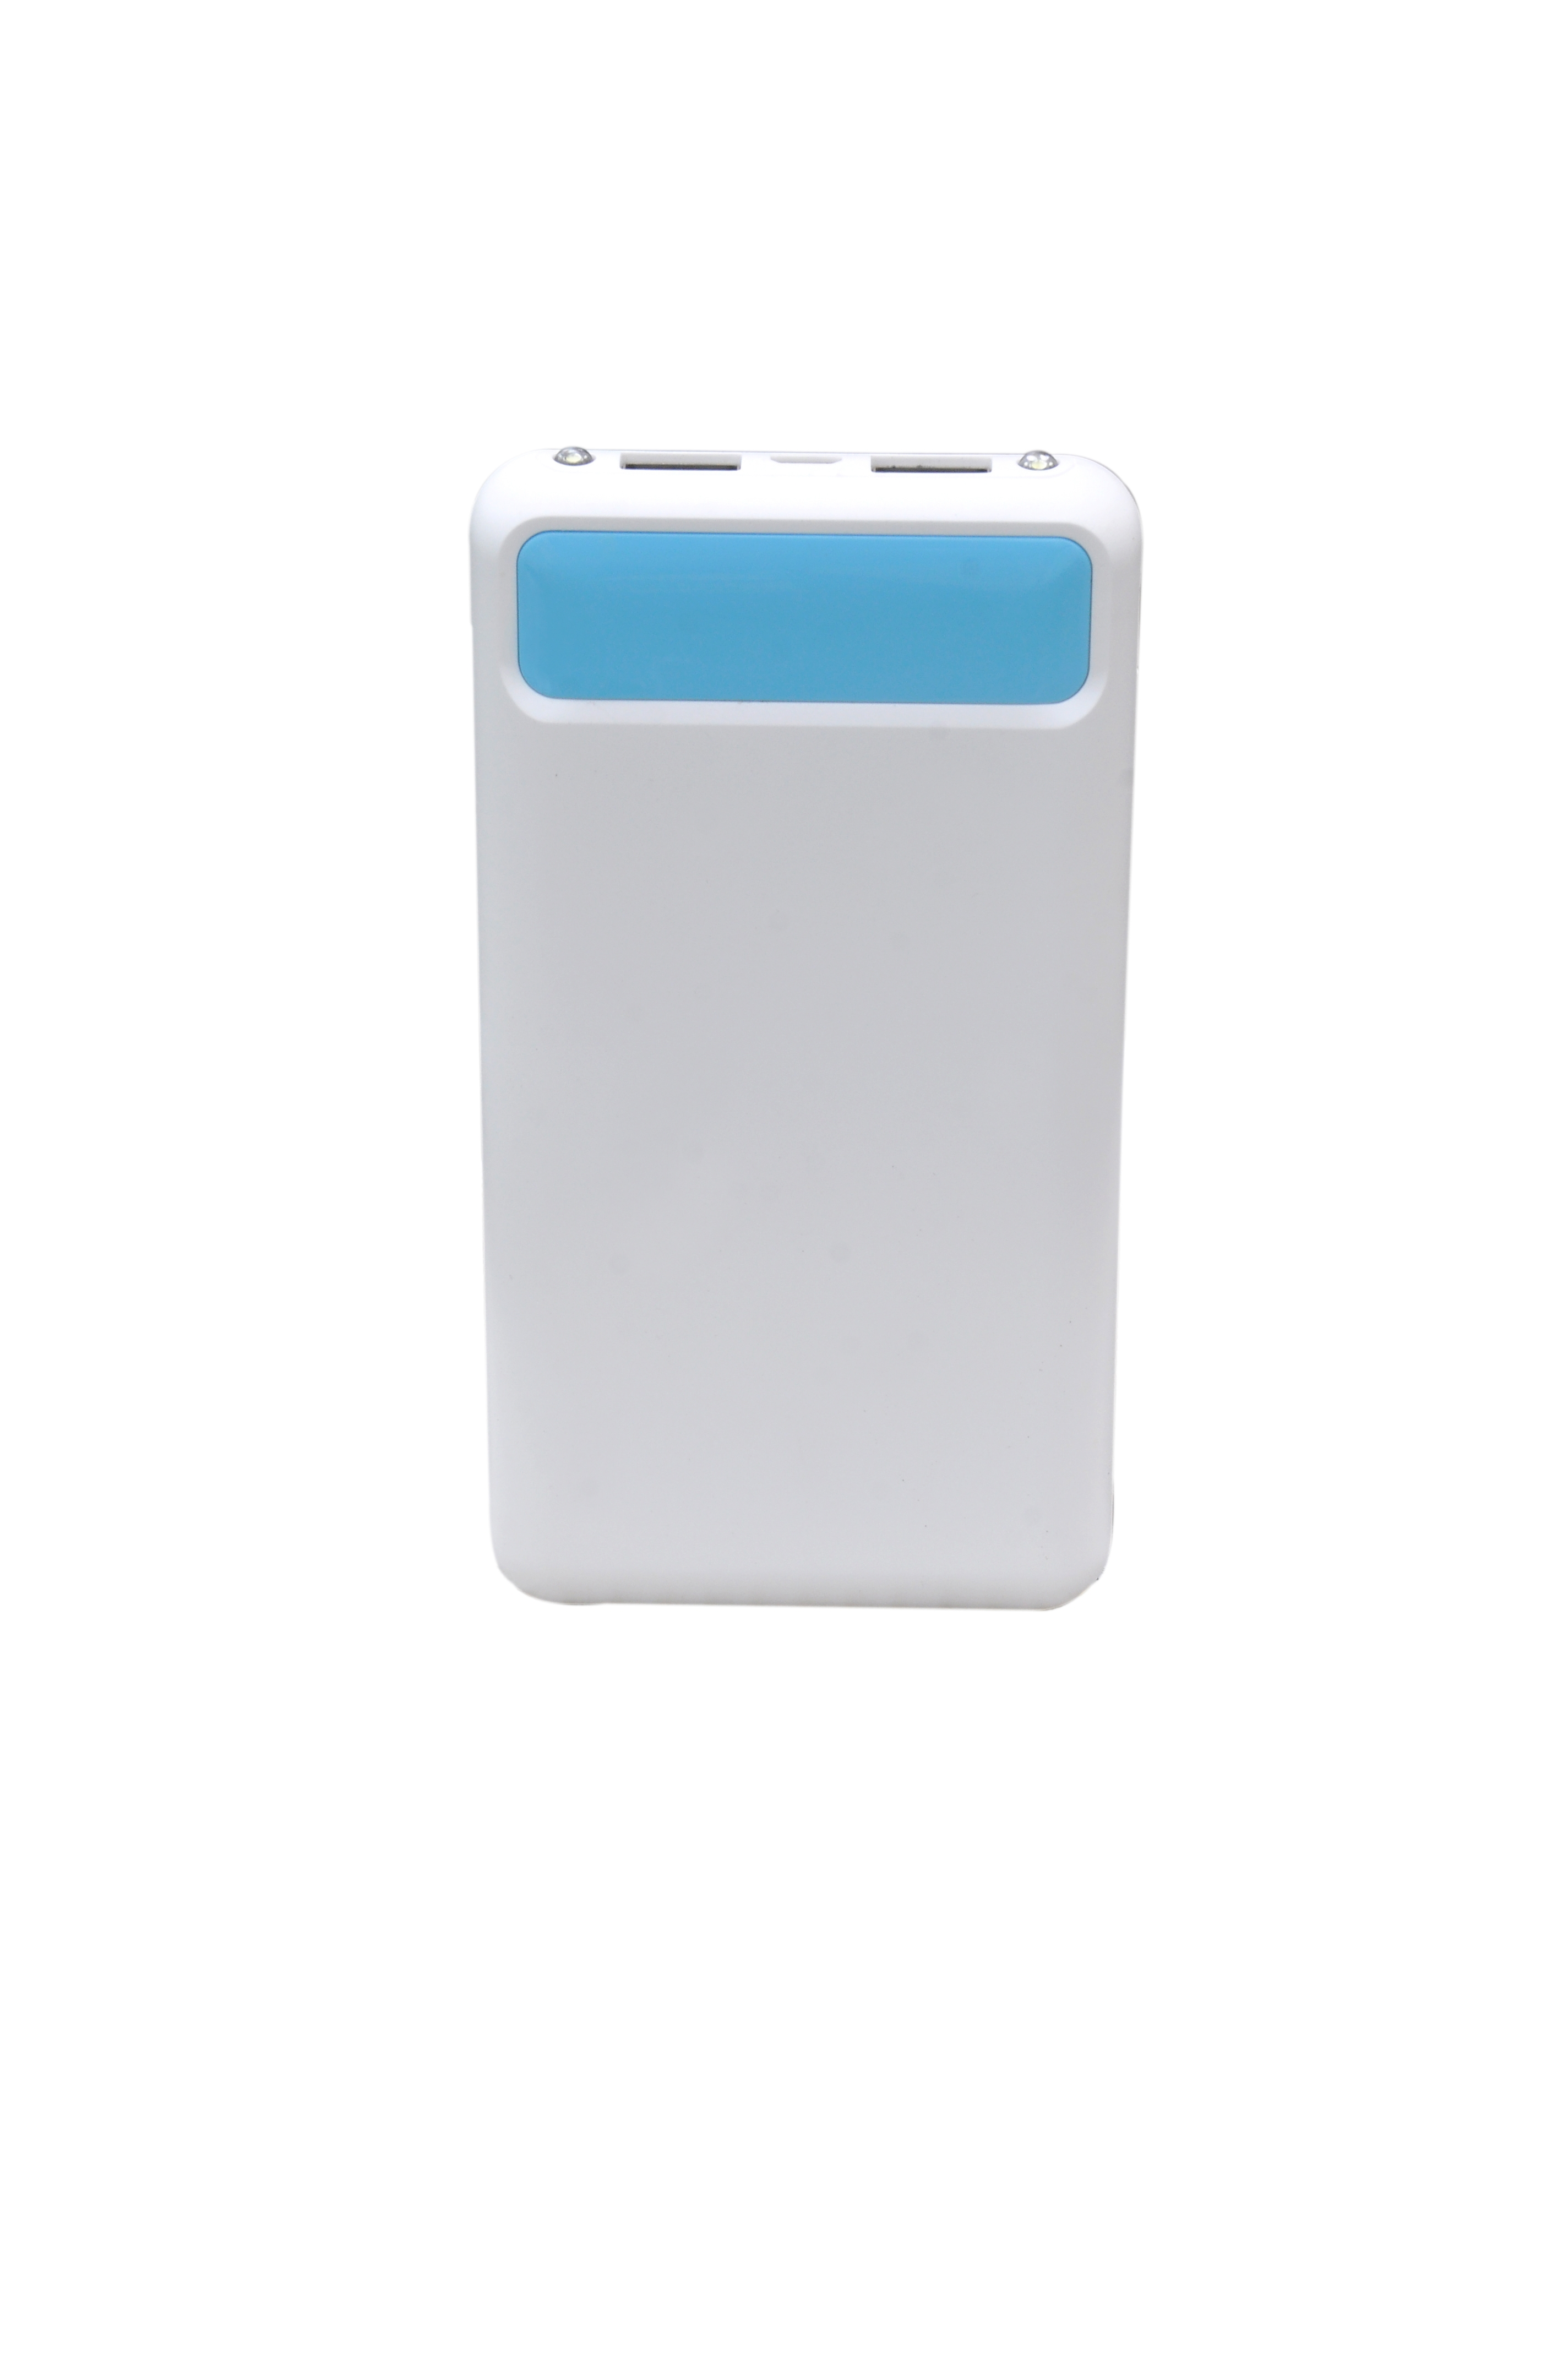 HBNS Pearl LED 30000mAH 2 USB Output & Dual Flash light With Digital Display Portable External Emergency Backup Battery Power Bank for Smartphones